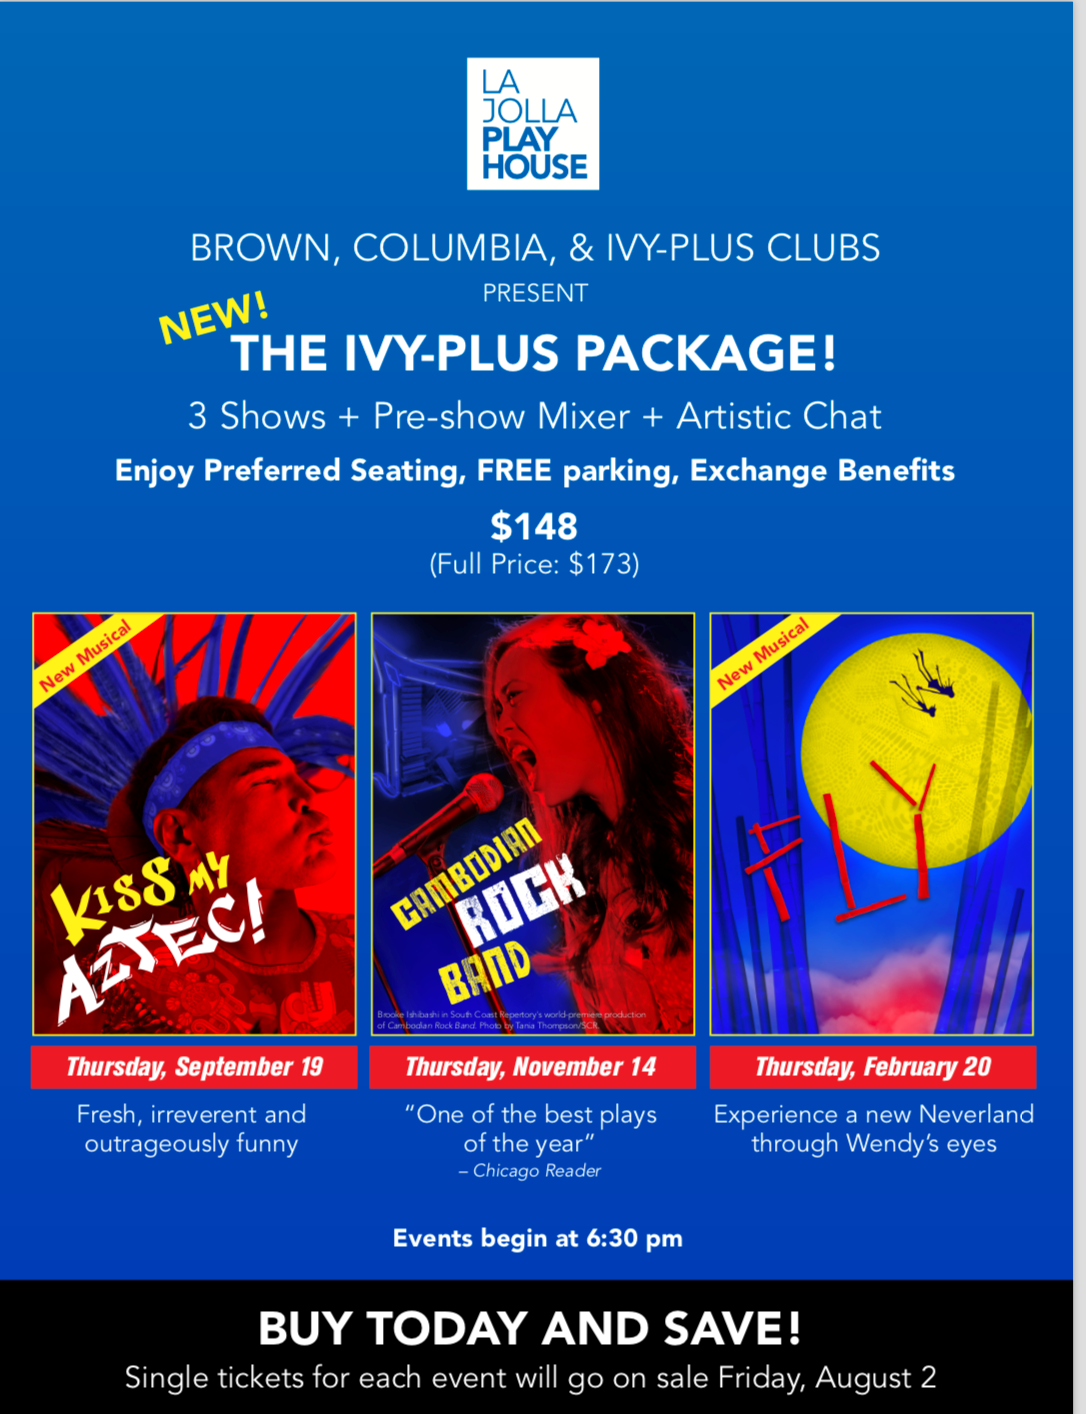 La_Jolla_Playhouse-Ivy__Package.png